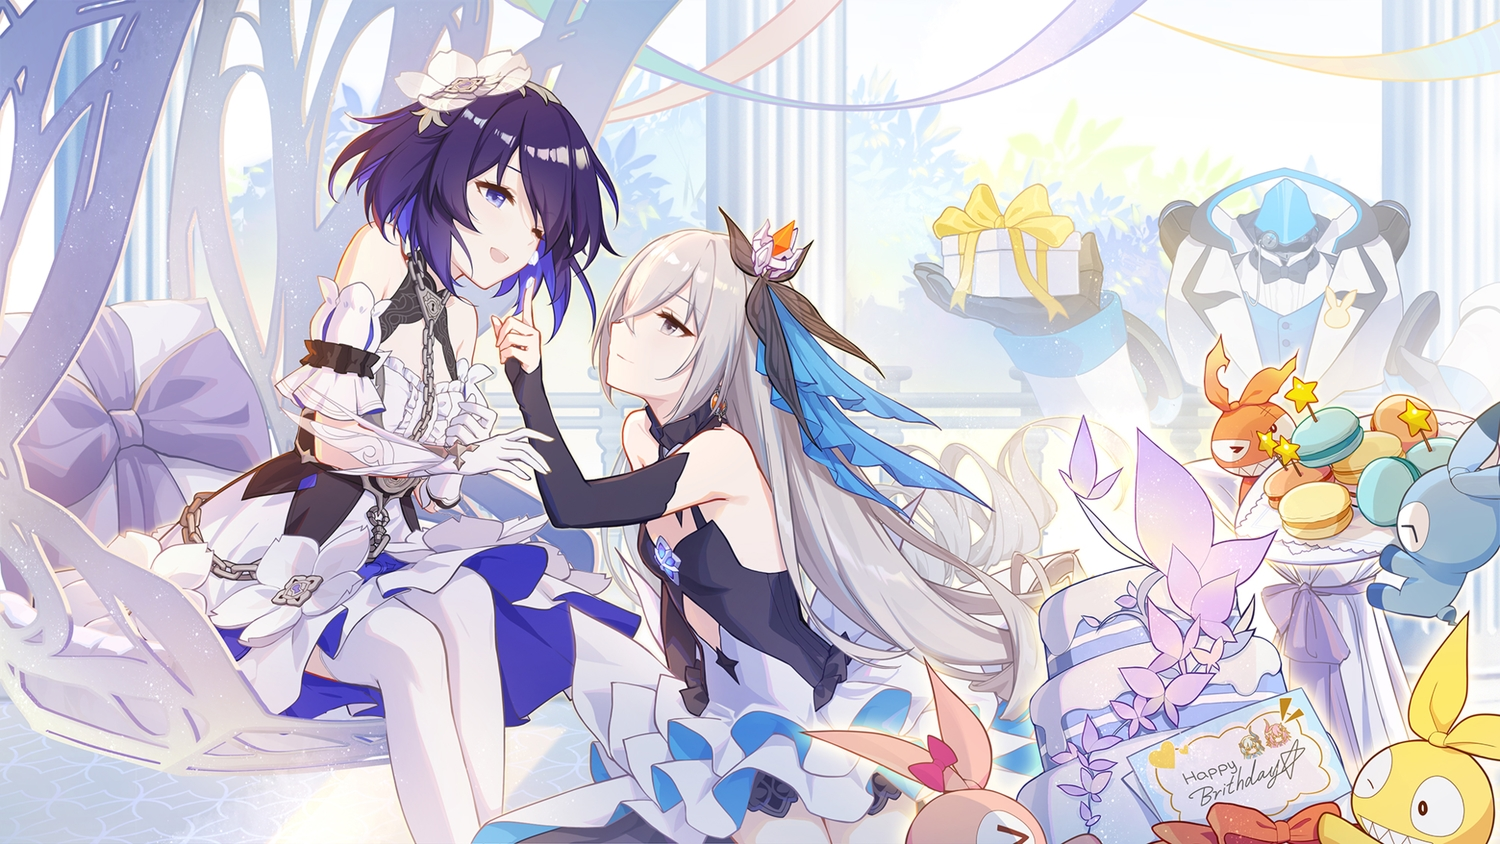 blue_eyes blue_hair bronya_zaychik dress elbow_gloves food gloves gray_eyes green_hair honkai_impact long_hair robot seele_vollerei short_hair shoujo_ai tagme_(artist) thighhighs